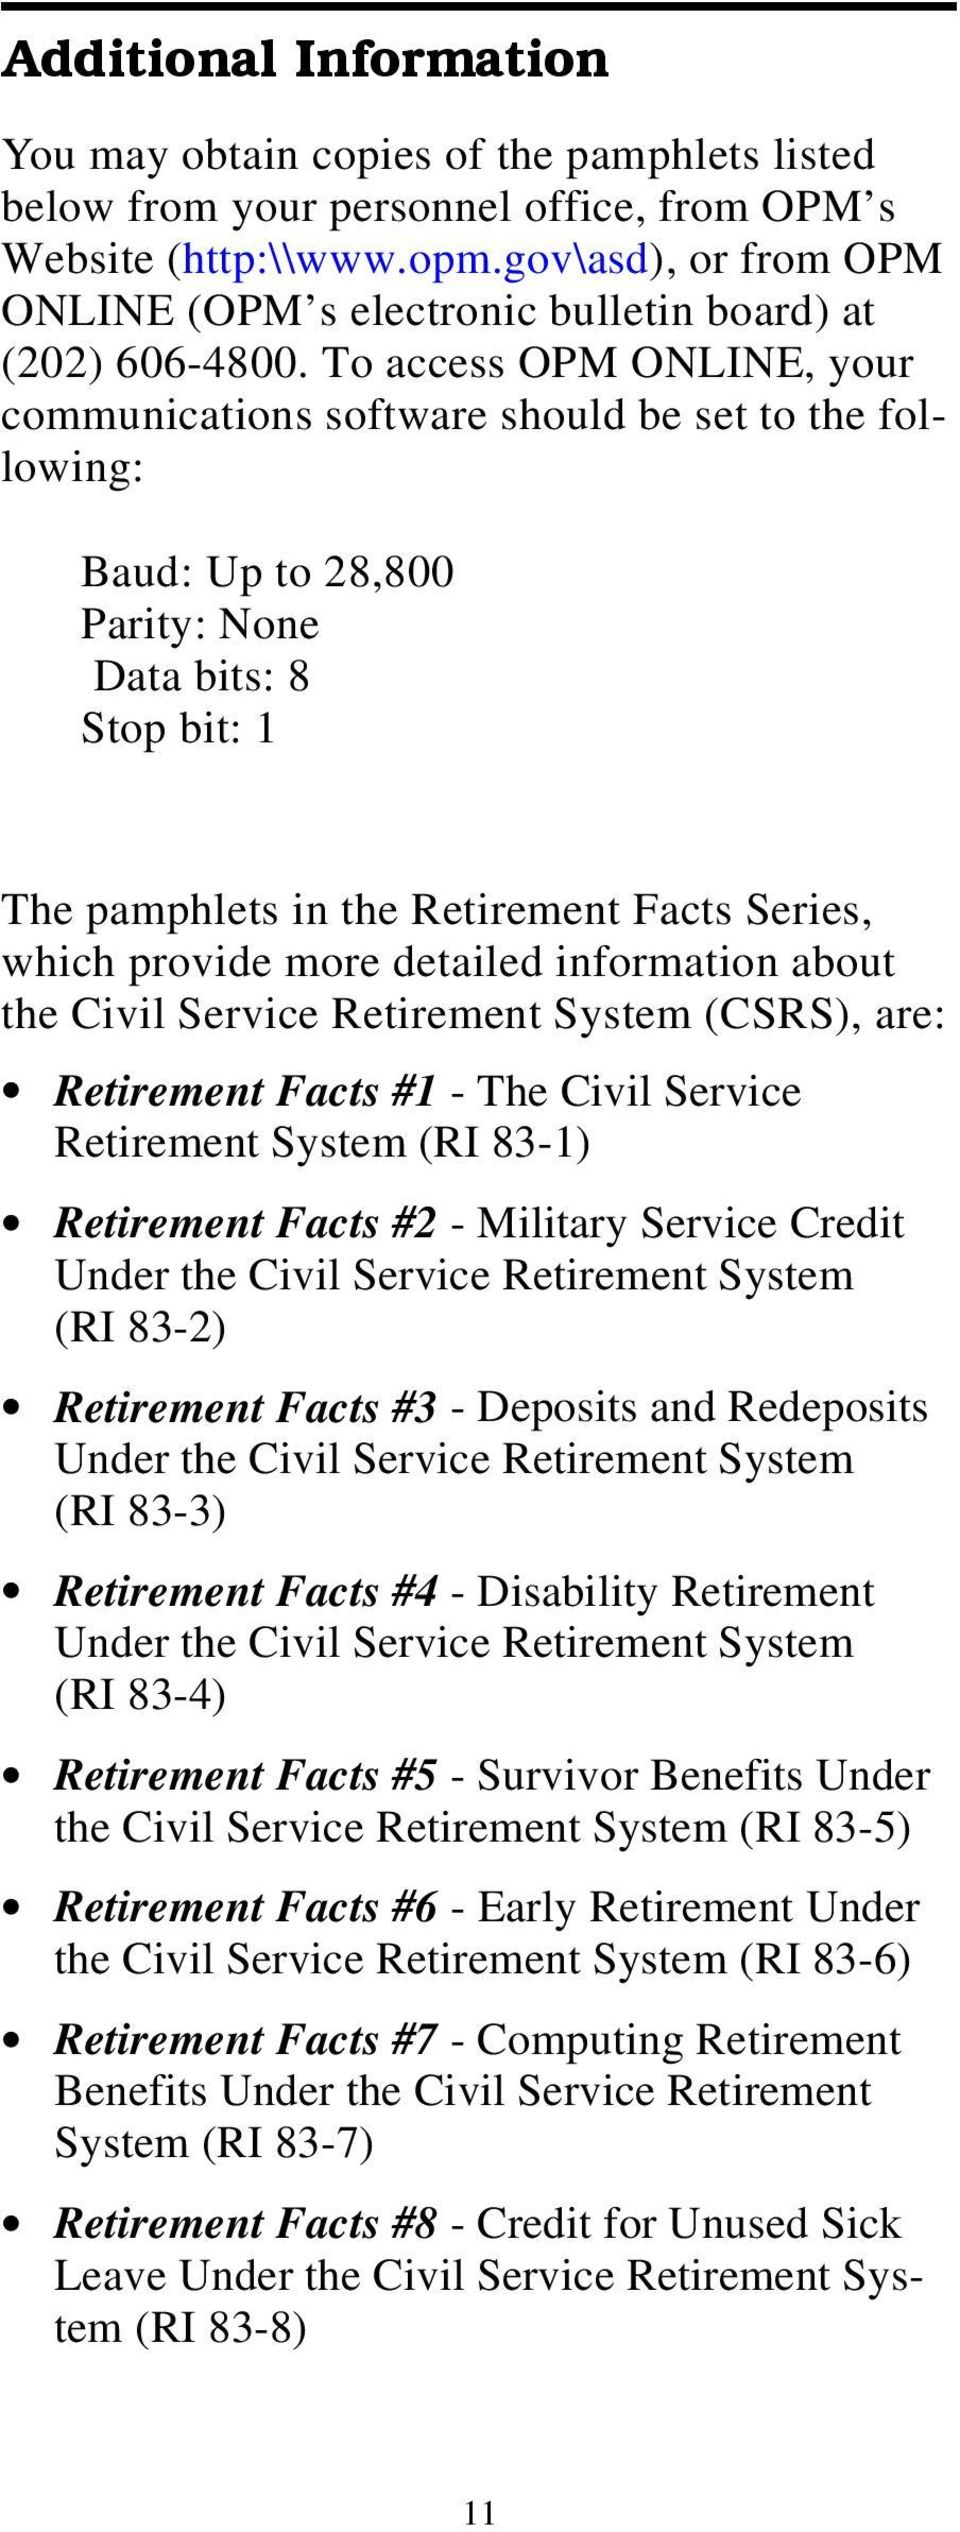 To access OPM ONLINE, your communications software should be set to the following: Baud: Up to 28,800 Parity: None Data bits: 8 Stop bit: 1 The pamphlets in the Retirement Facts Series, which provide